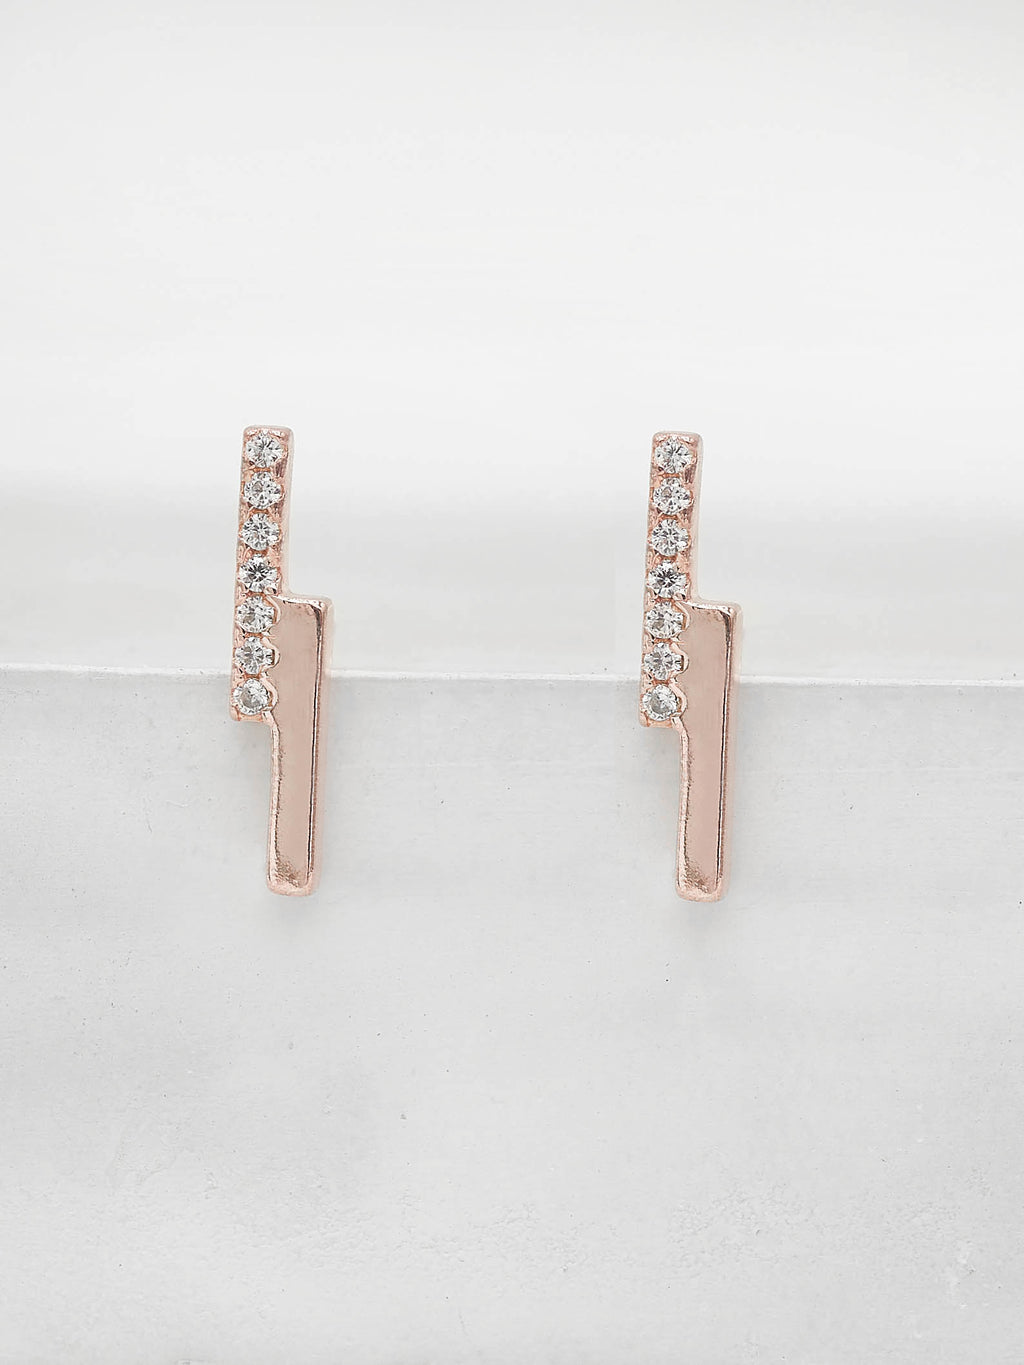 Rose Gold Plated Mini Double Bar studs with Round white CZ Stud Earrings by The Faint Hearted Jewelry